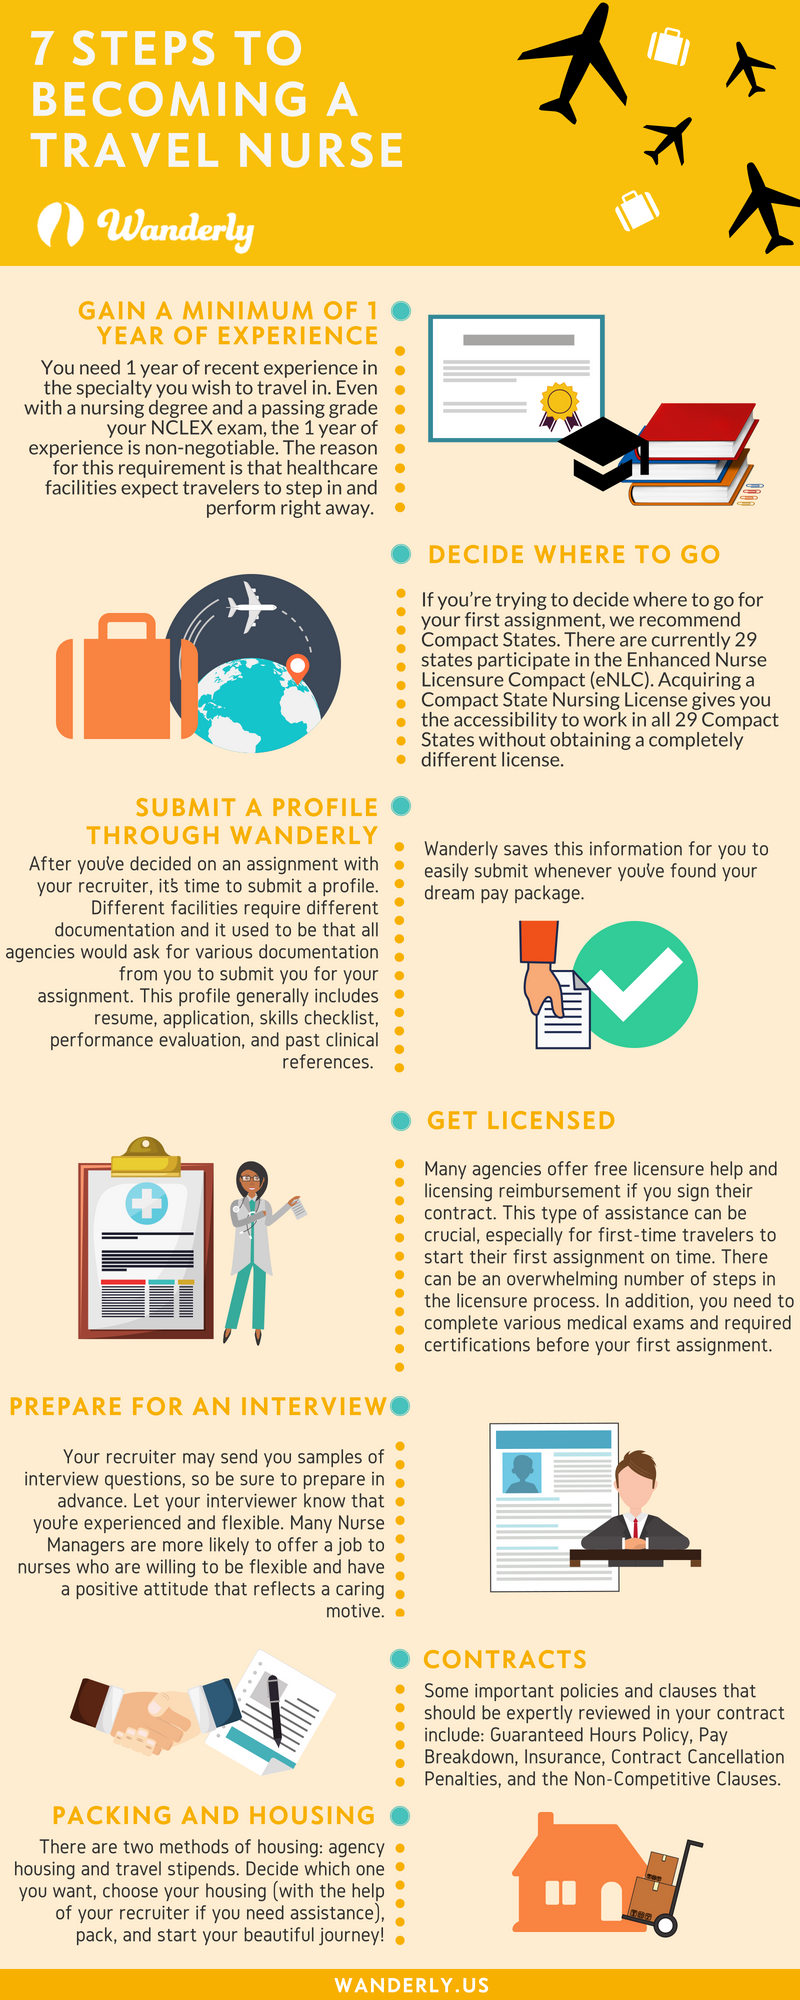 Wanderly 7 Steps To Becoming A Travel Nurse Travel Nursing